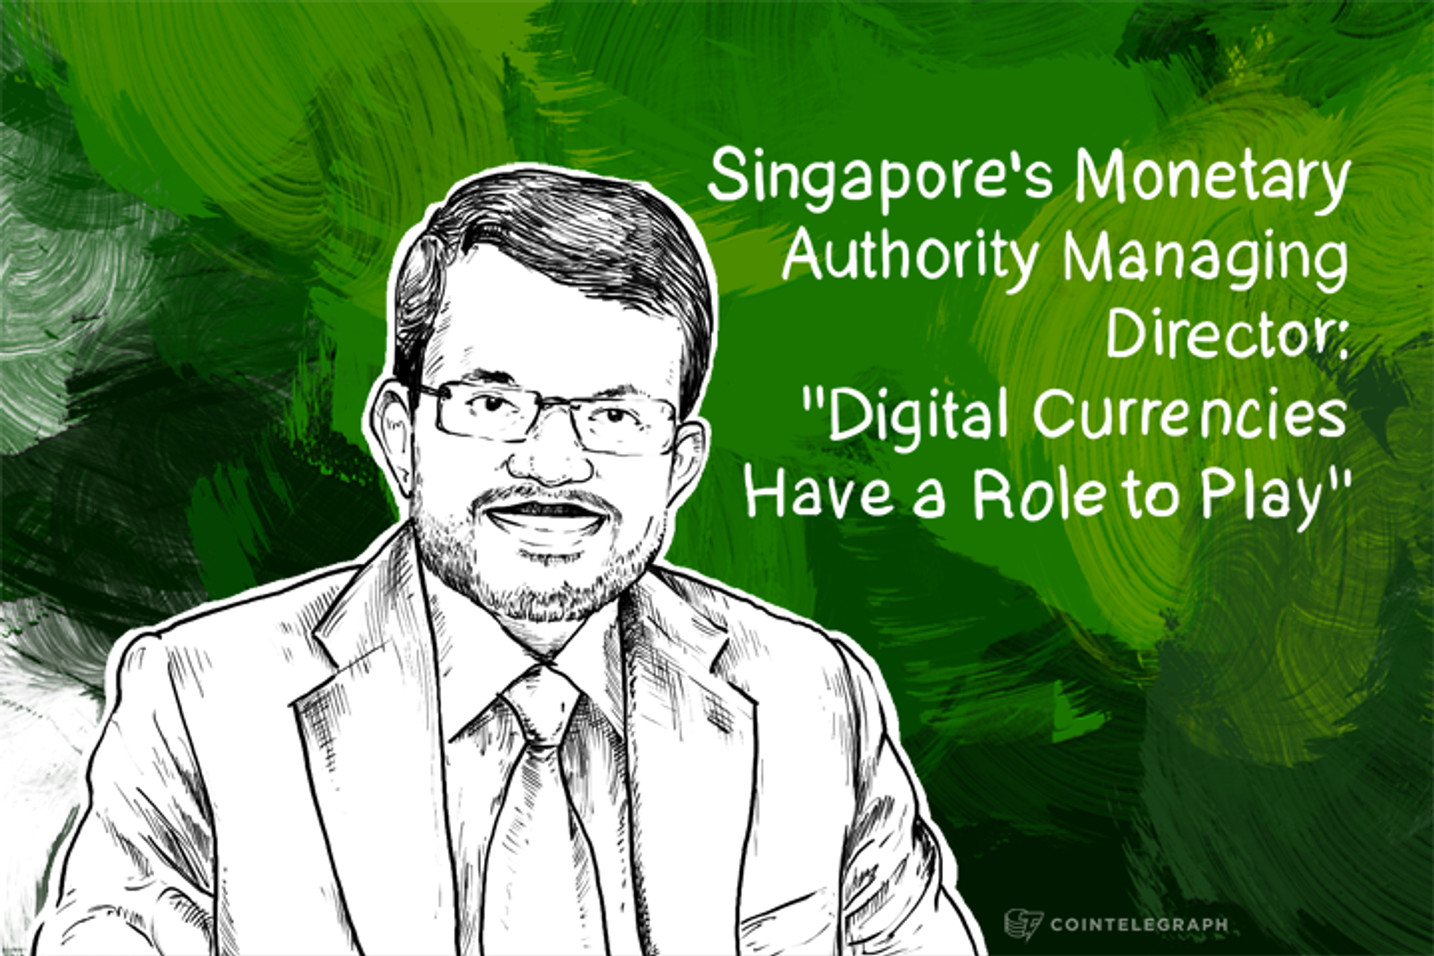 """Singapore's Monetary Authority Managing Director: """"Digital Currencies Have a Role to Play"""""""